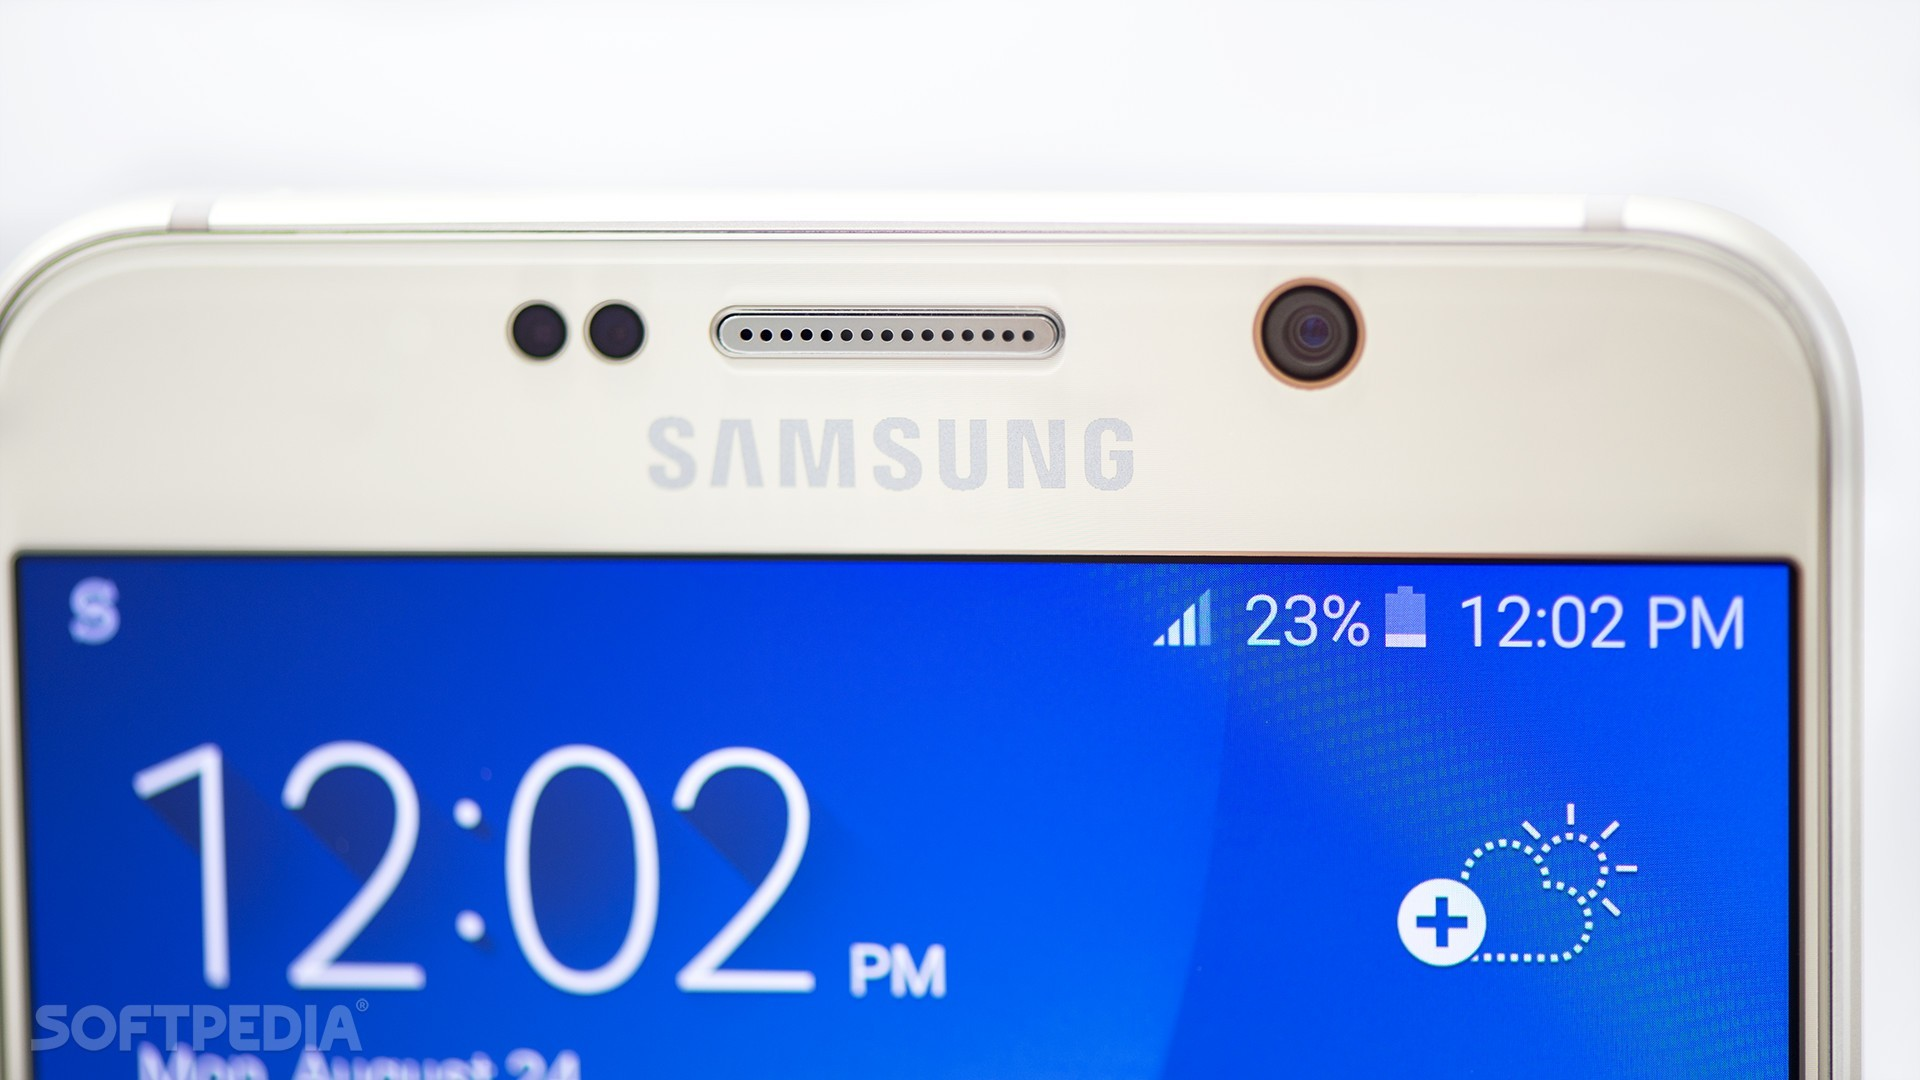 LED Notification Light On The Brand New Samsung Galaxy Note5